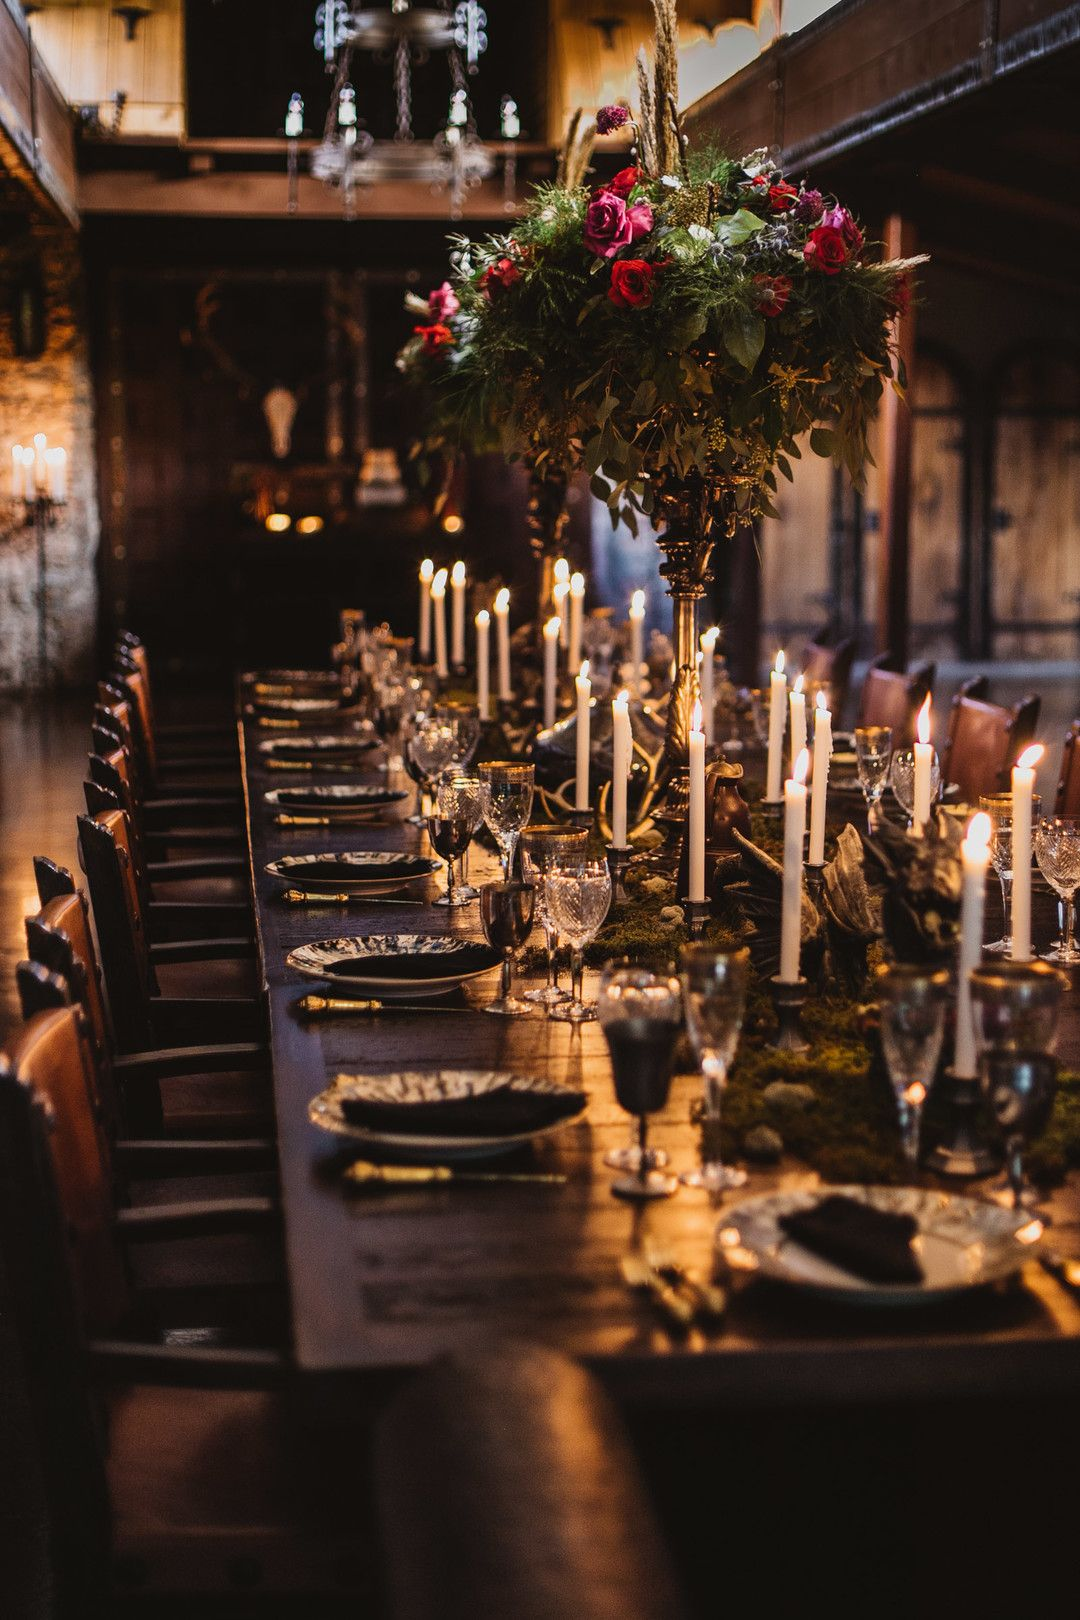 Moody Game of Thrones Themed Wedding Reception with Elevated Centerpieces and Gold & Black Details. Photo by Lara Rose Photography.